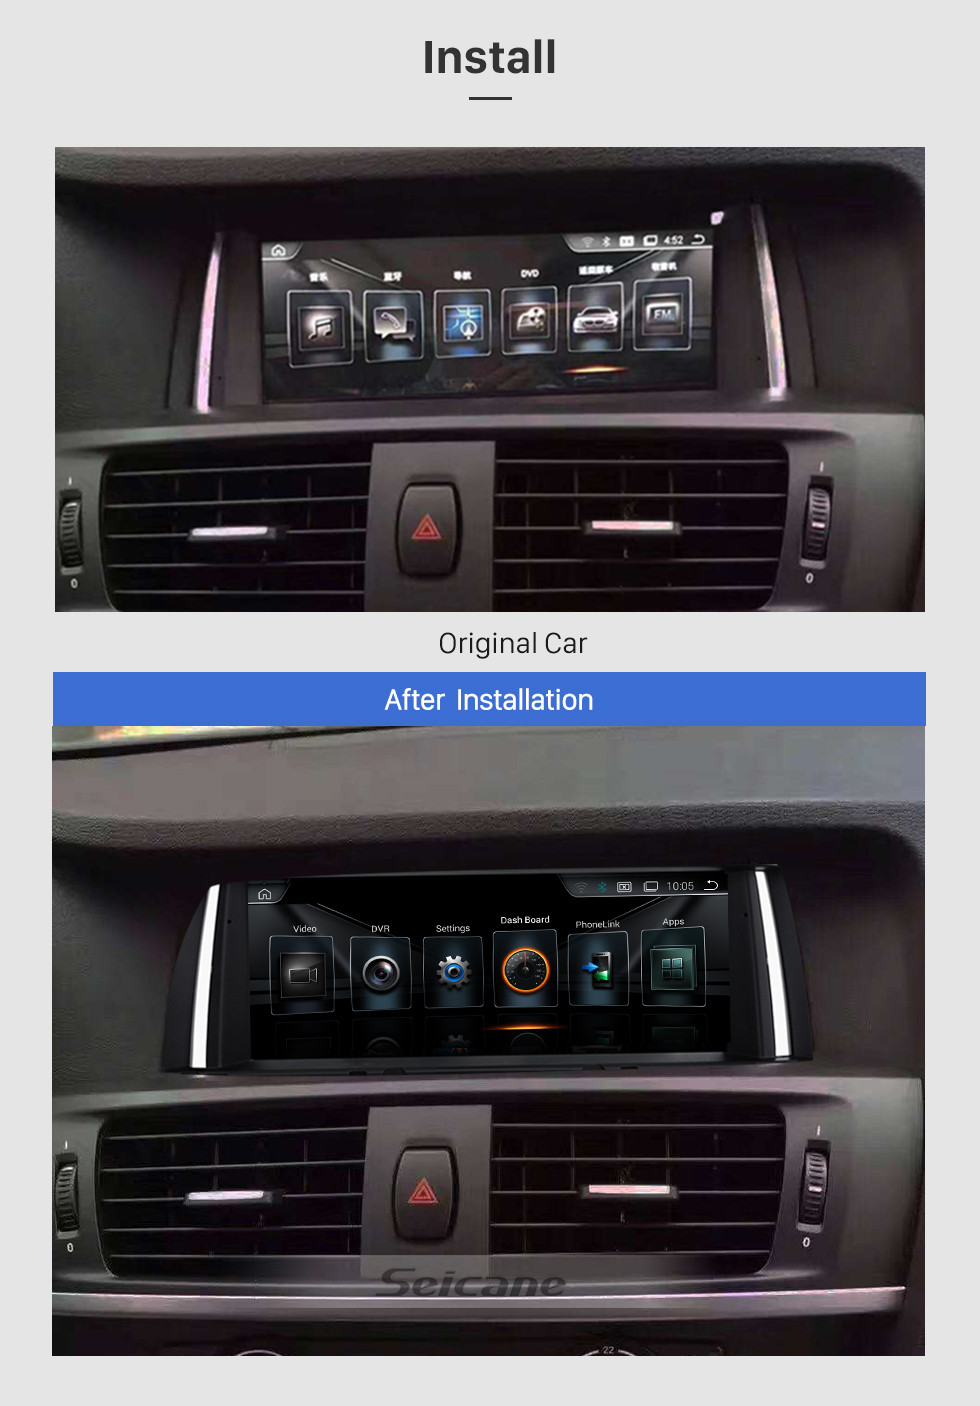 Seicane OEM 8.8 Inch Android 8.1 HD Touchscreen 2011-2013 BMW X3 F25 CIC Radio Head Unit GPS Navigation Bluetooth Support USB WIFI OBD2 Rearview Camera Steering Wheel Control